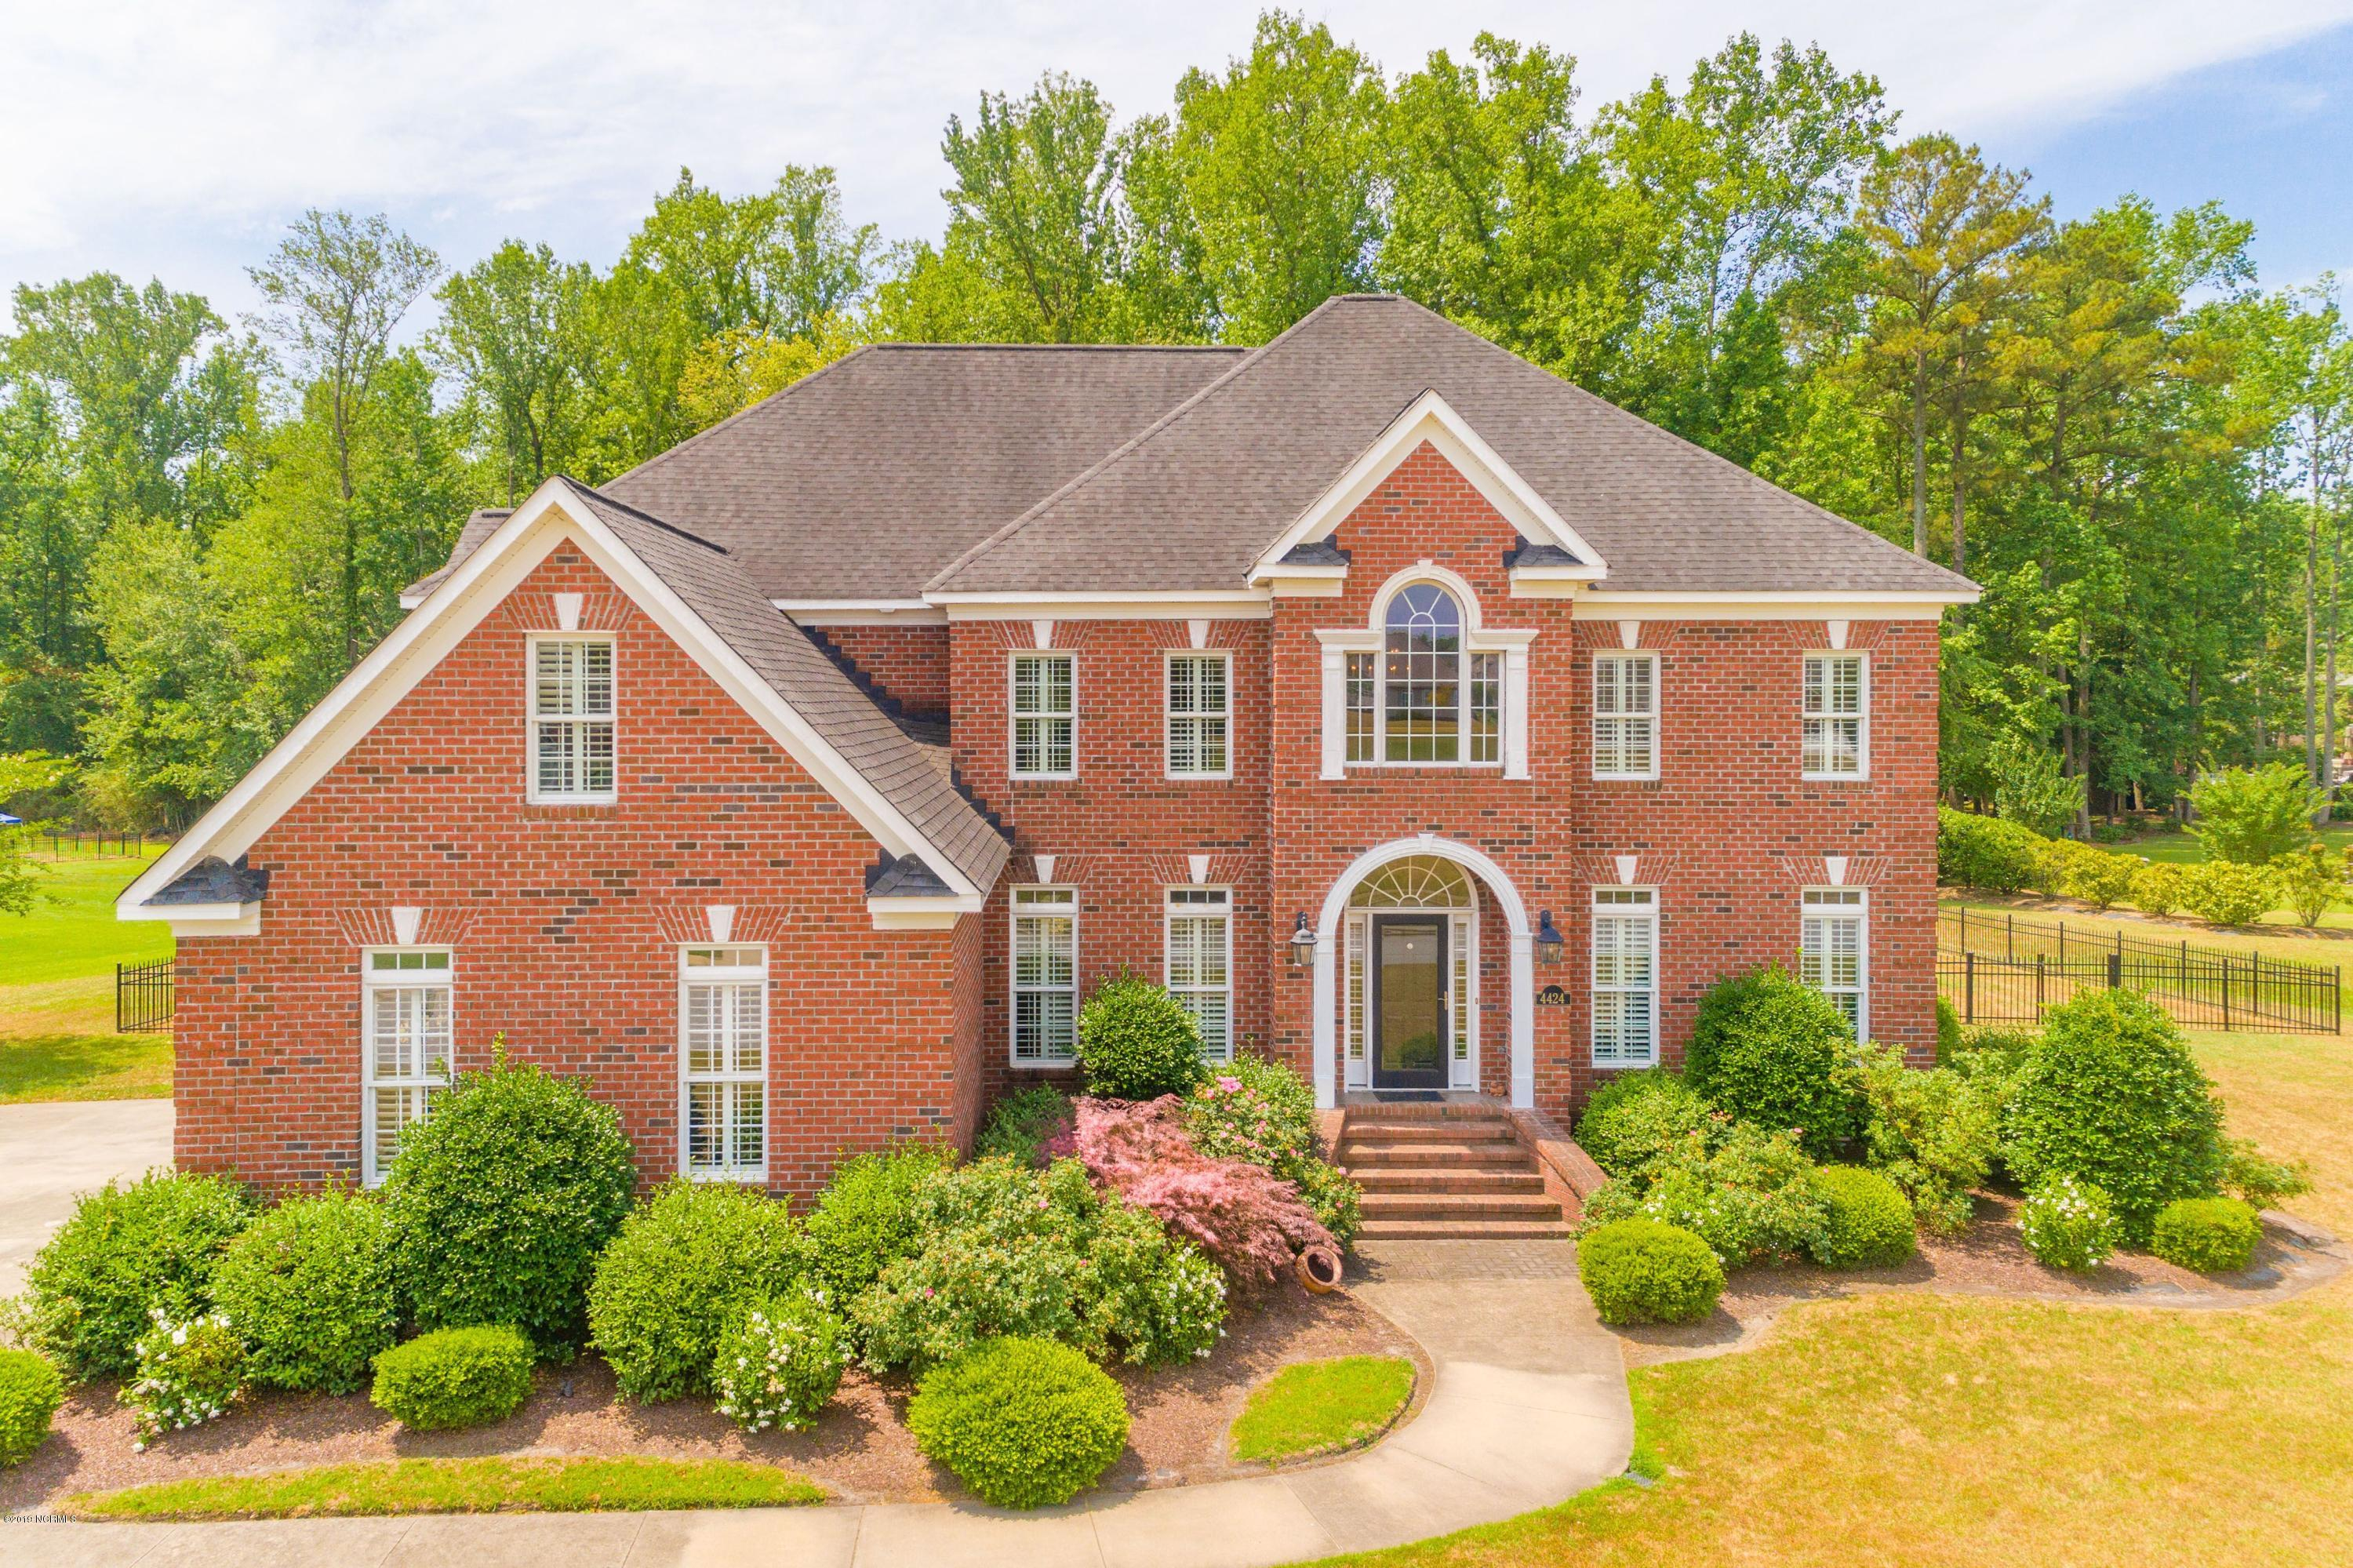 Property for sale at 4424 Galway Drive, Winterville,  North Carolina 28590